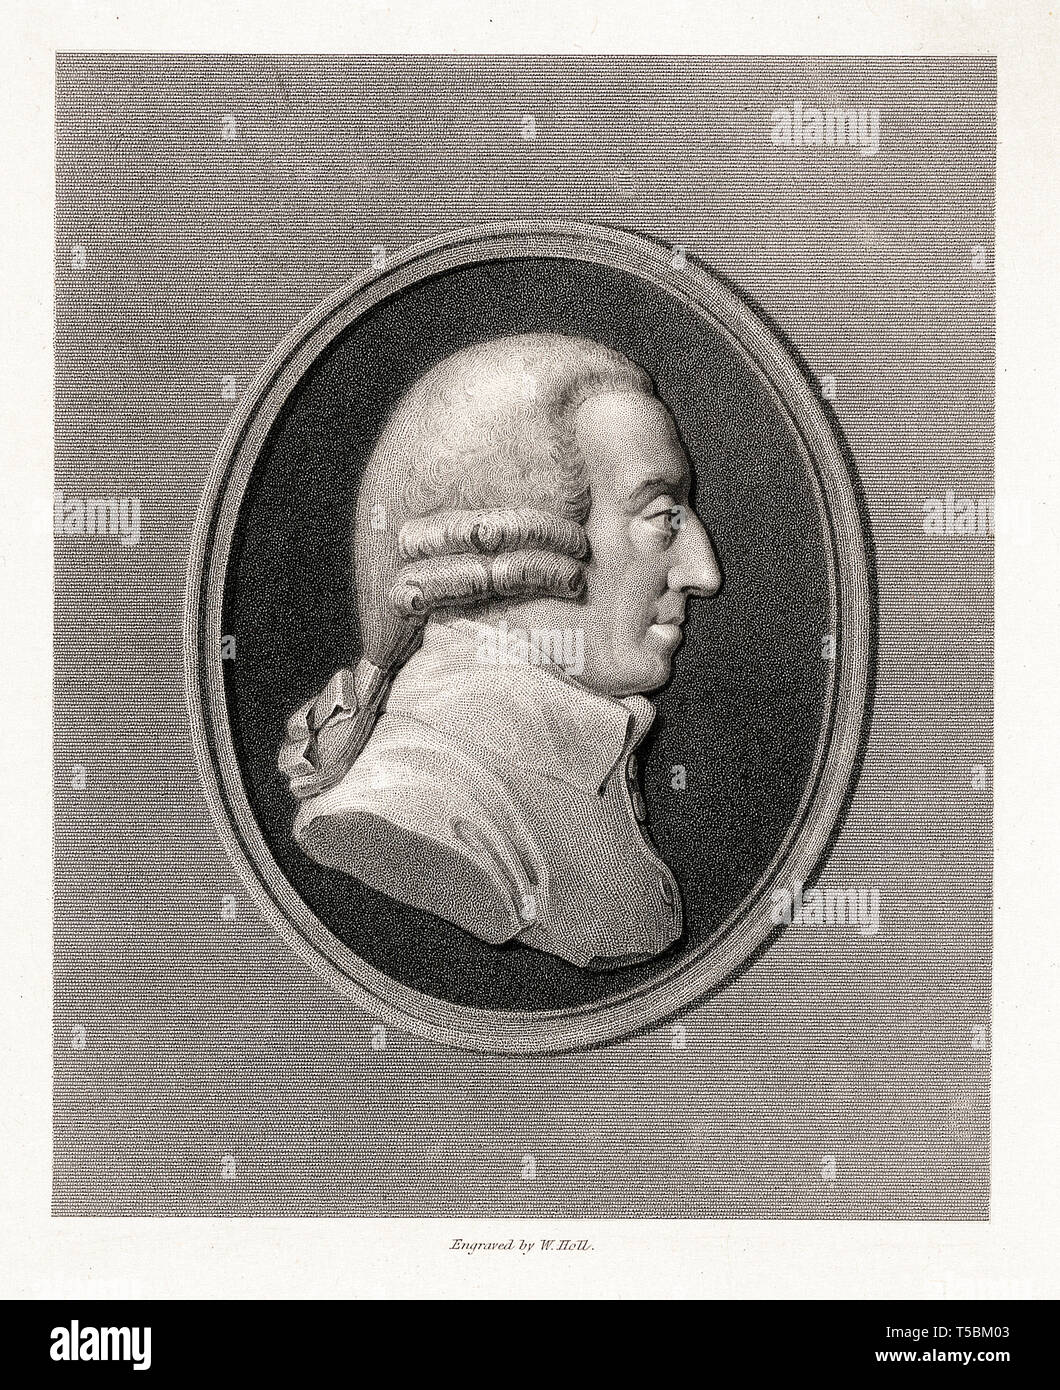 Adam Smith (1723-1790), portrait etching by William Holl, 19th Century, after James Tassie Stock Photo